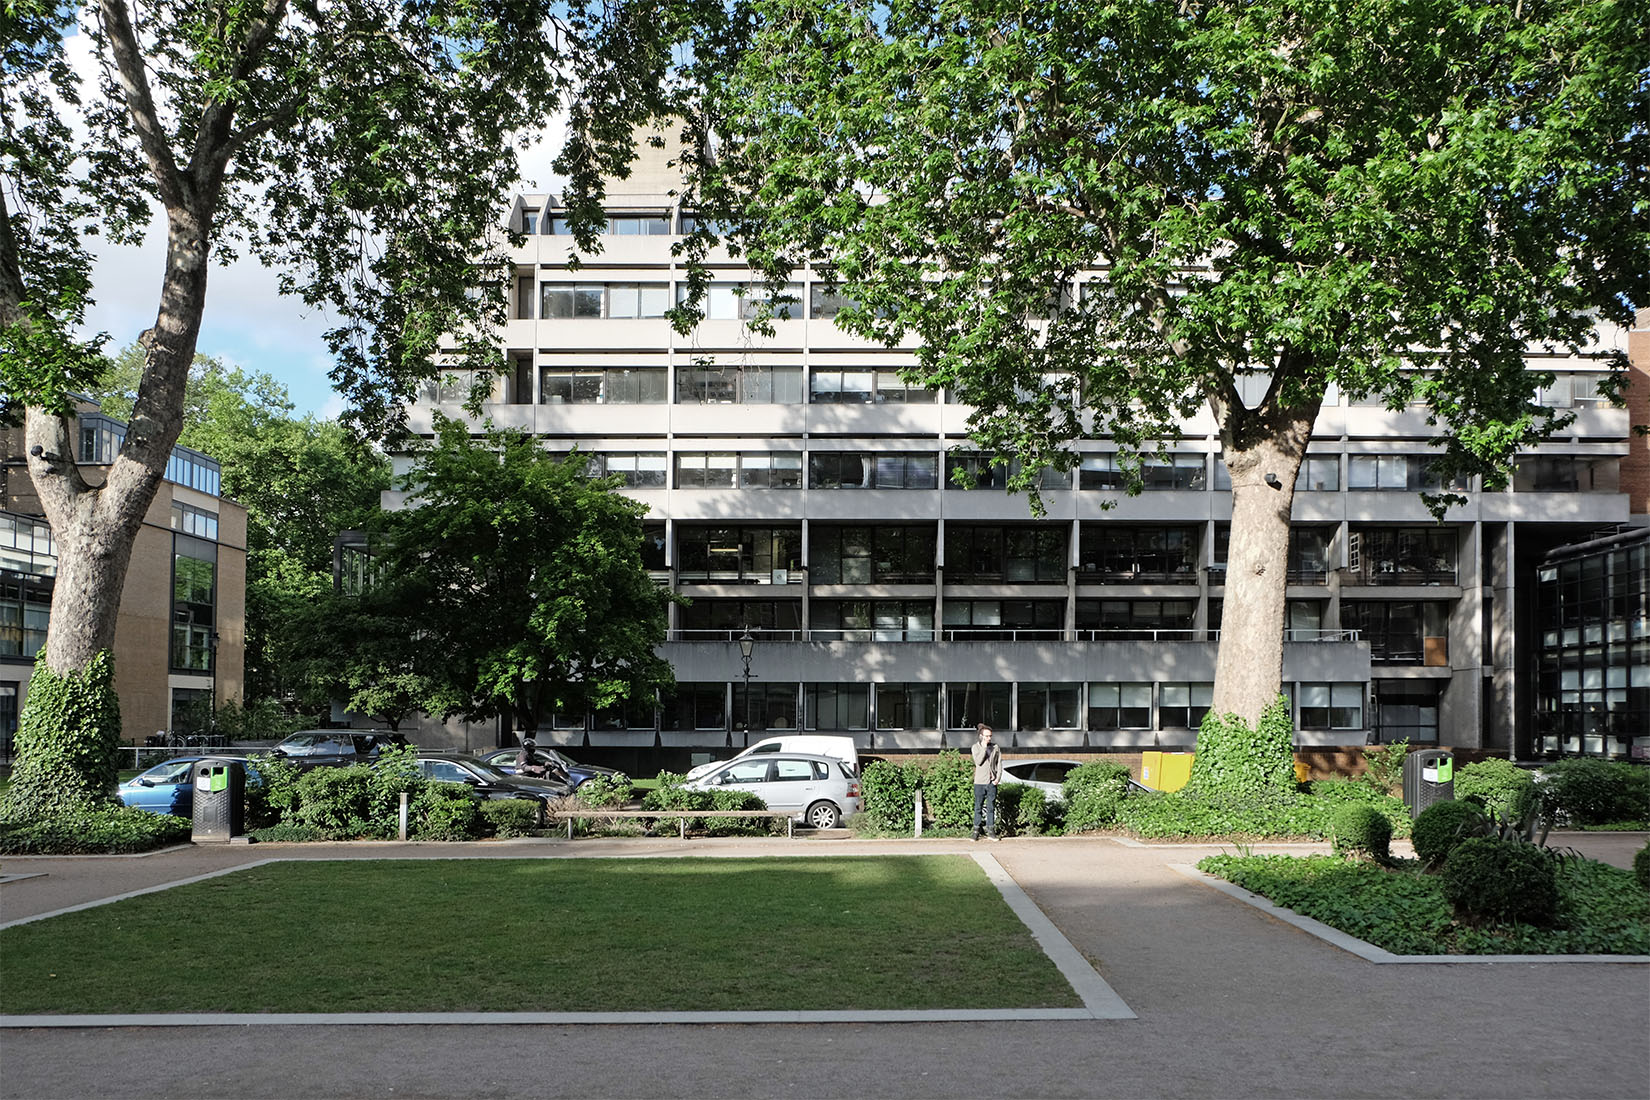 Denys Lasdun - Philips Building of School of Oriental and African Studies